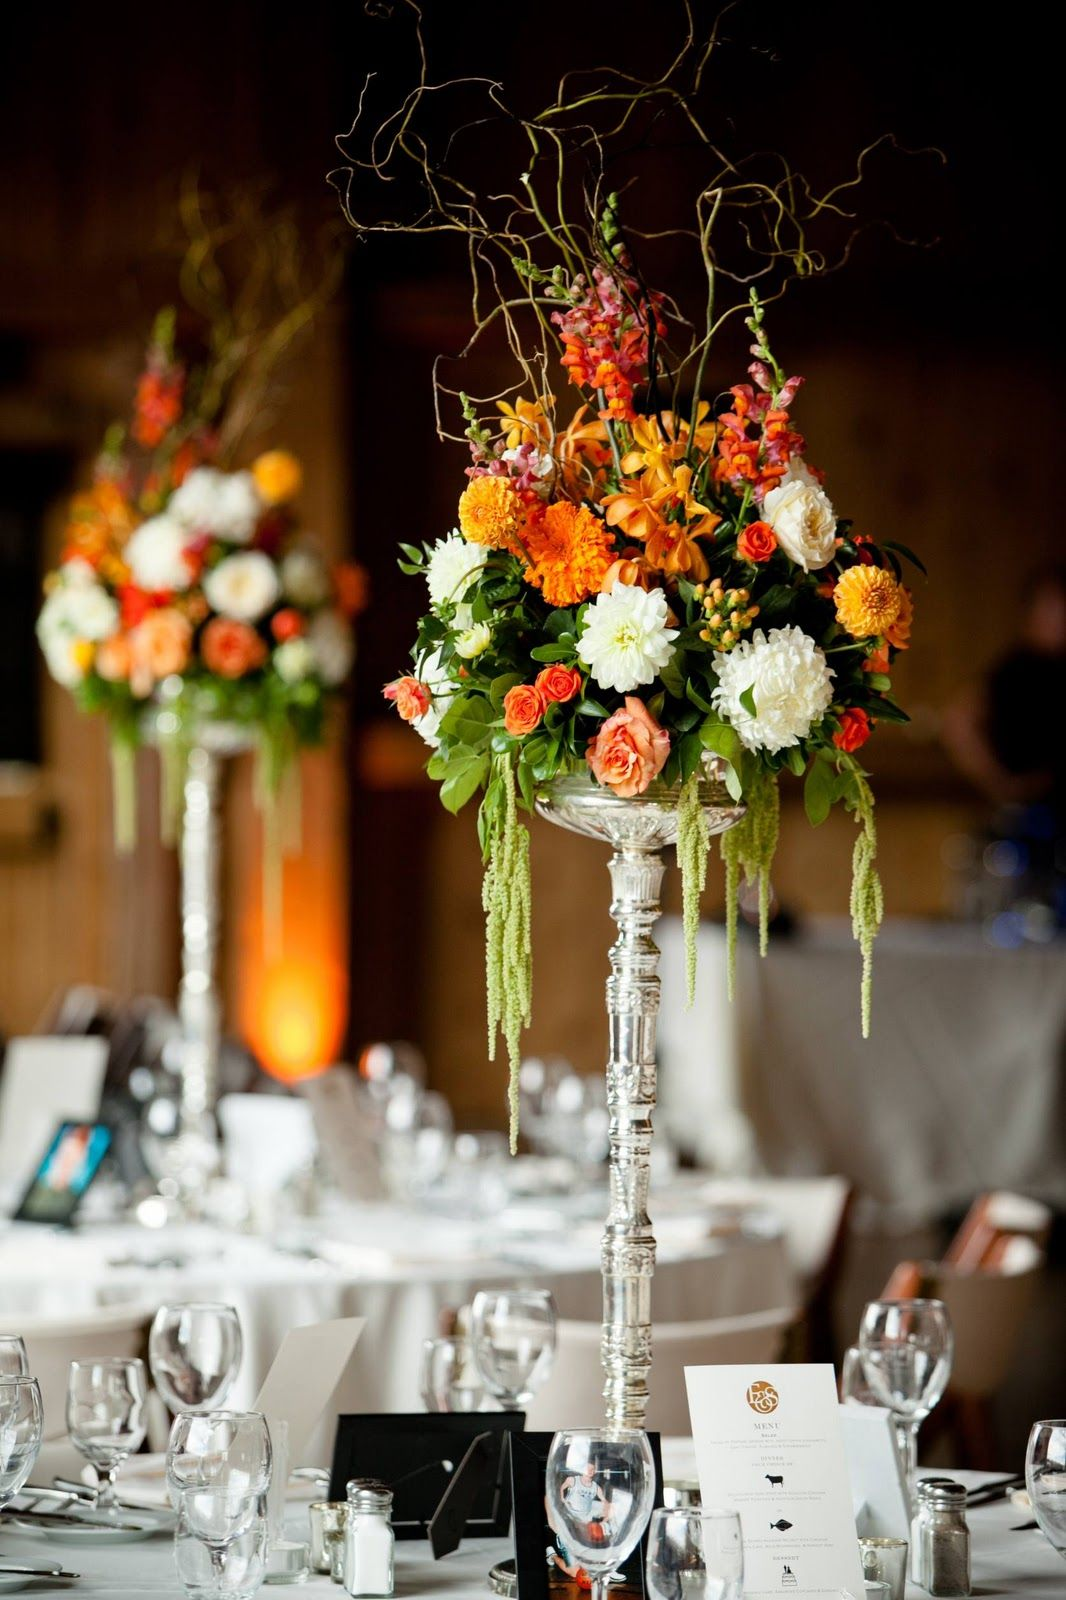 Diy tall wedding centerpieces while the long tables had